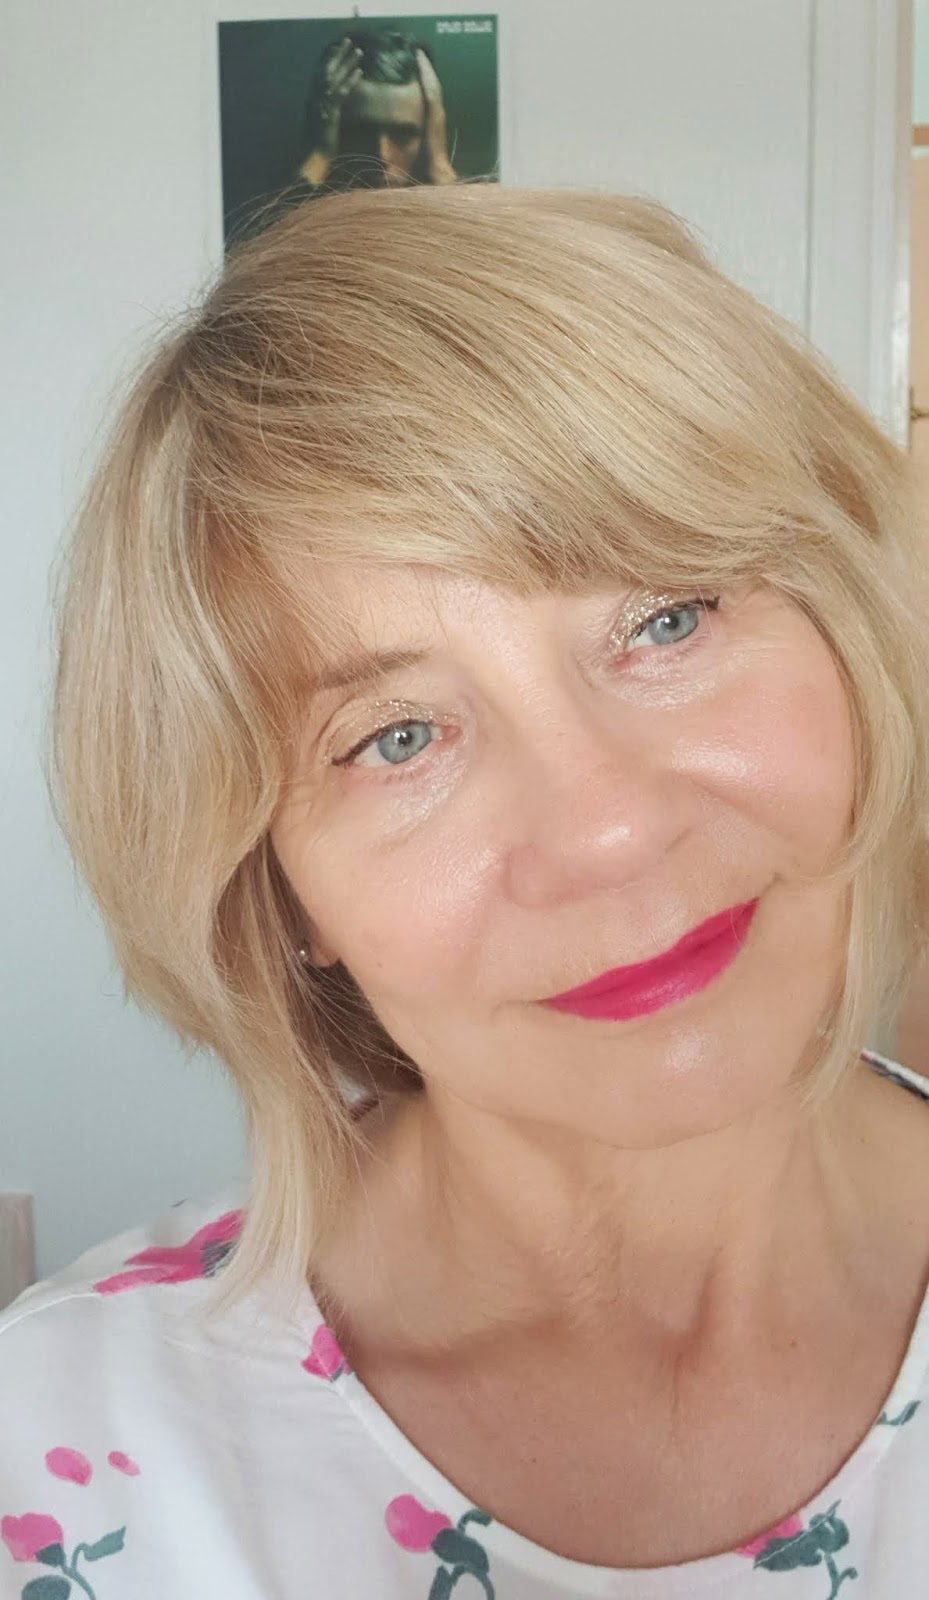 The over 50s look fantastic in bright vibrant lipstick shades and the new pinks collection from Lisa Eldridge is perfect. Gail Hanlon wears vibrant and deeply saturated Skyscraper Rose